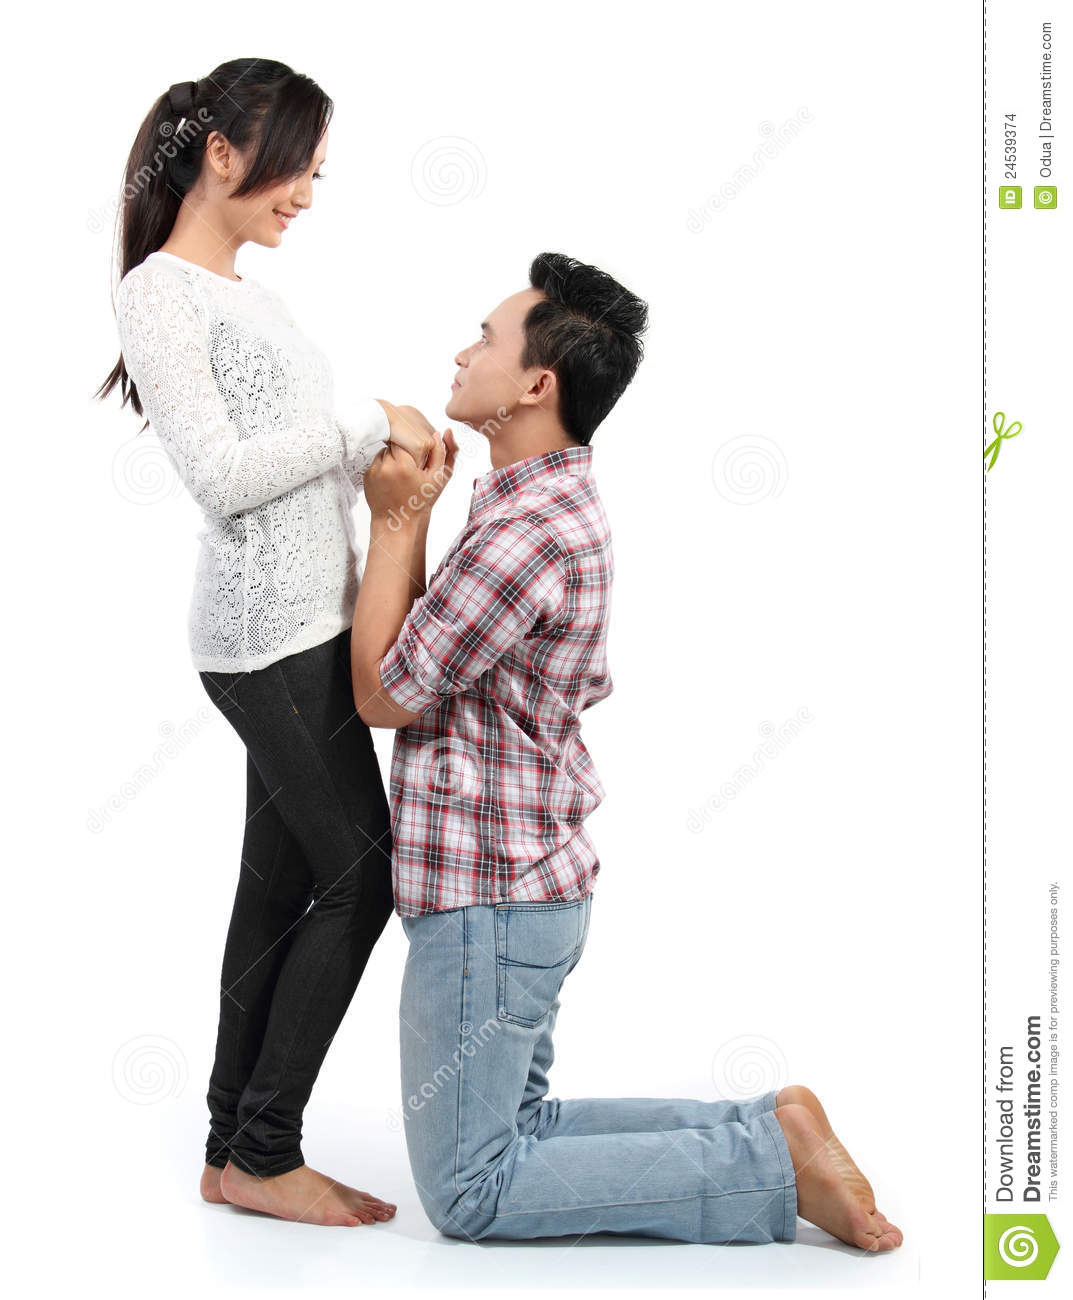 Man Proposing To Girlfriend Stock Images